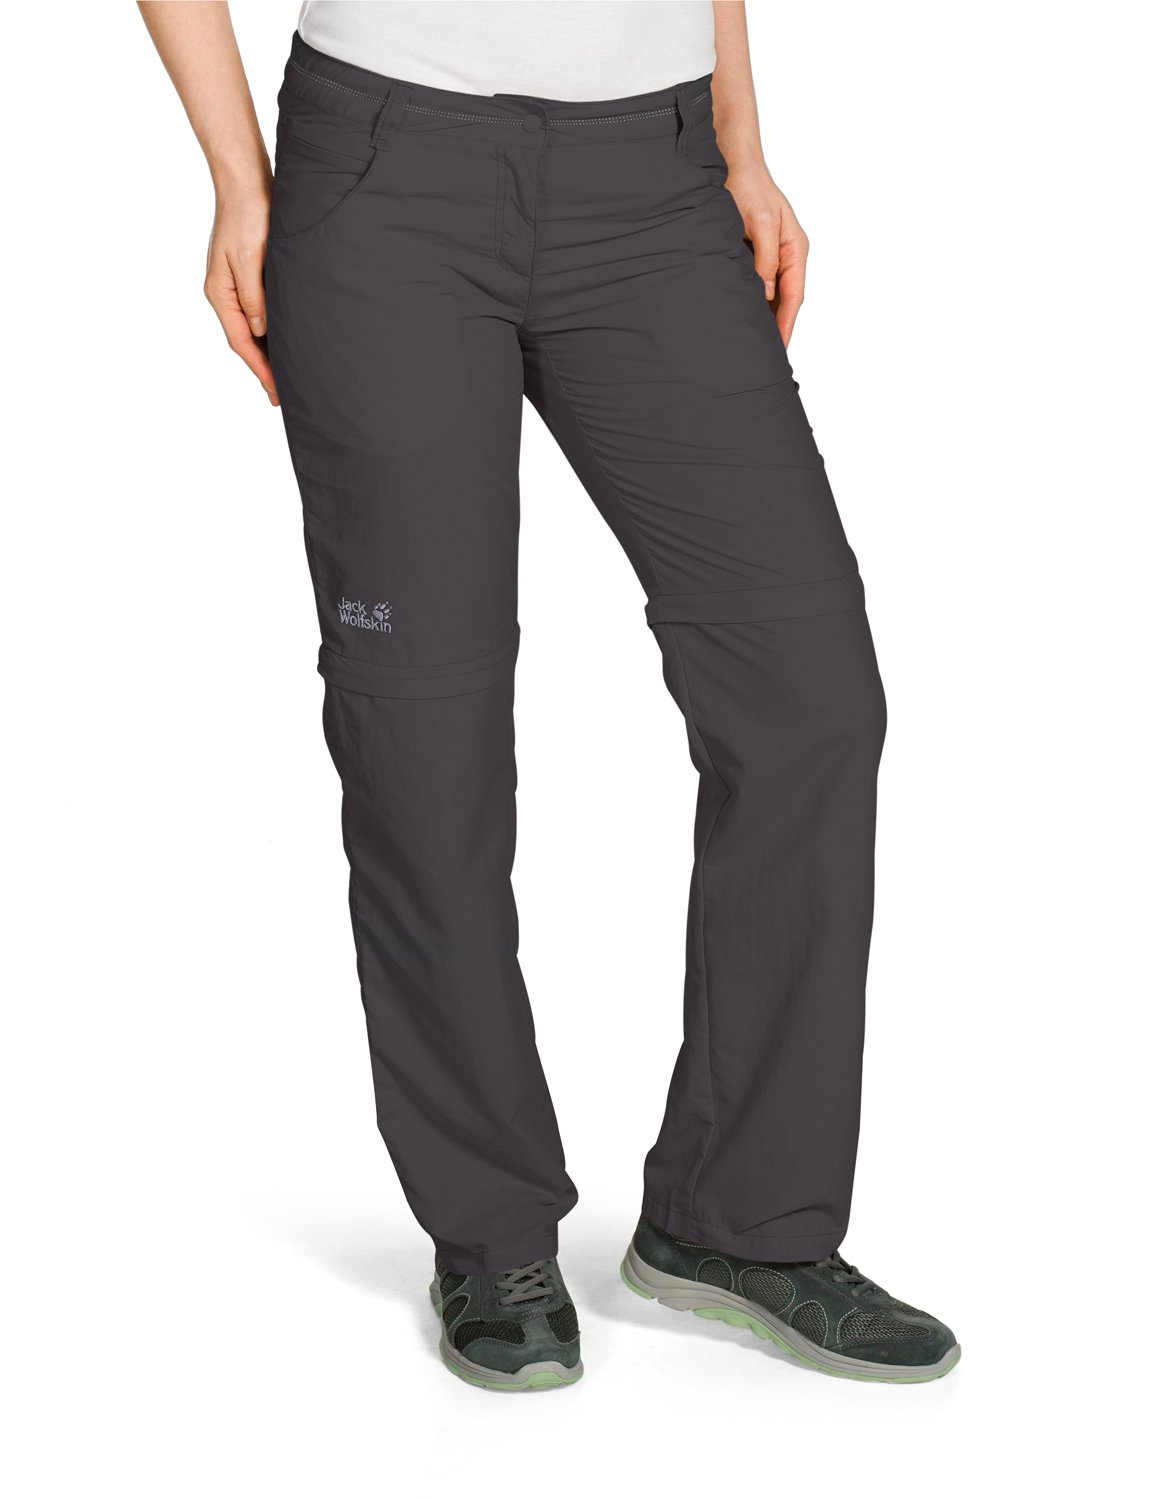 Jack Wolfskin Damen Hose Marrakech Zip Off Pants damen